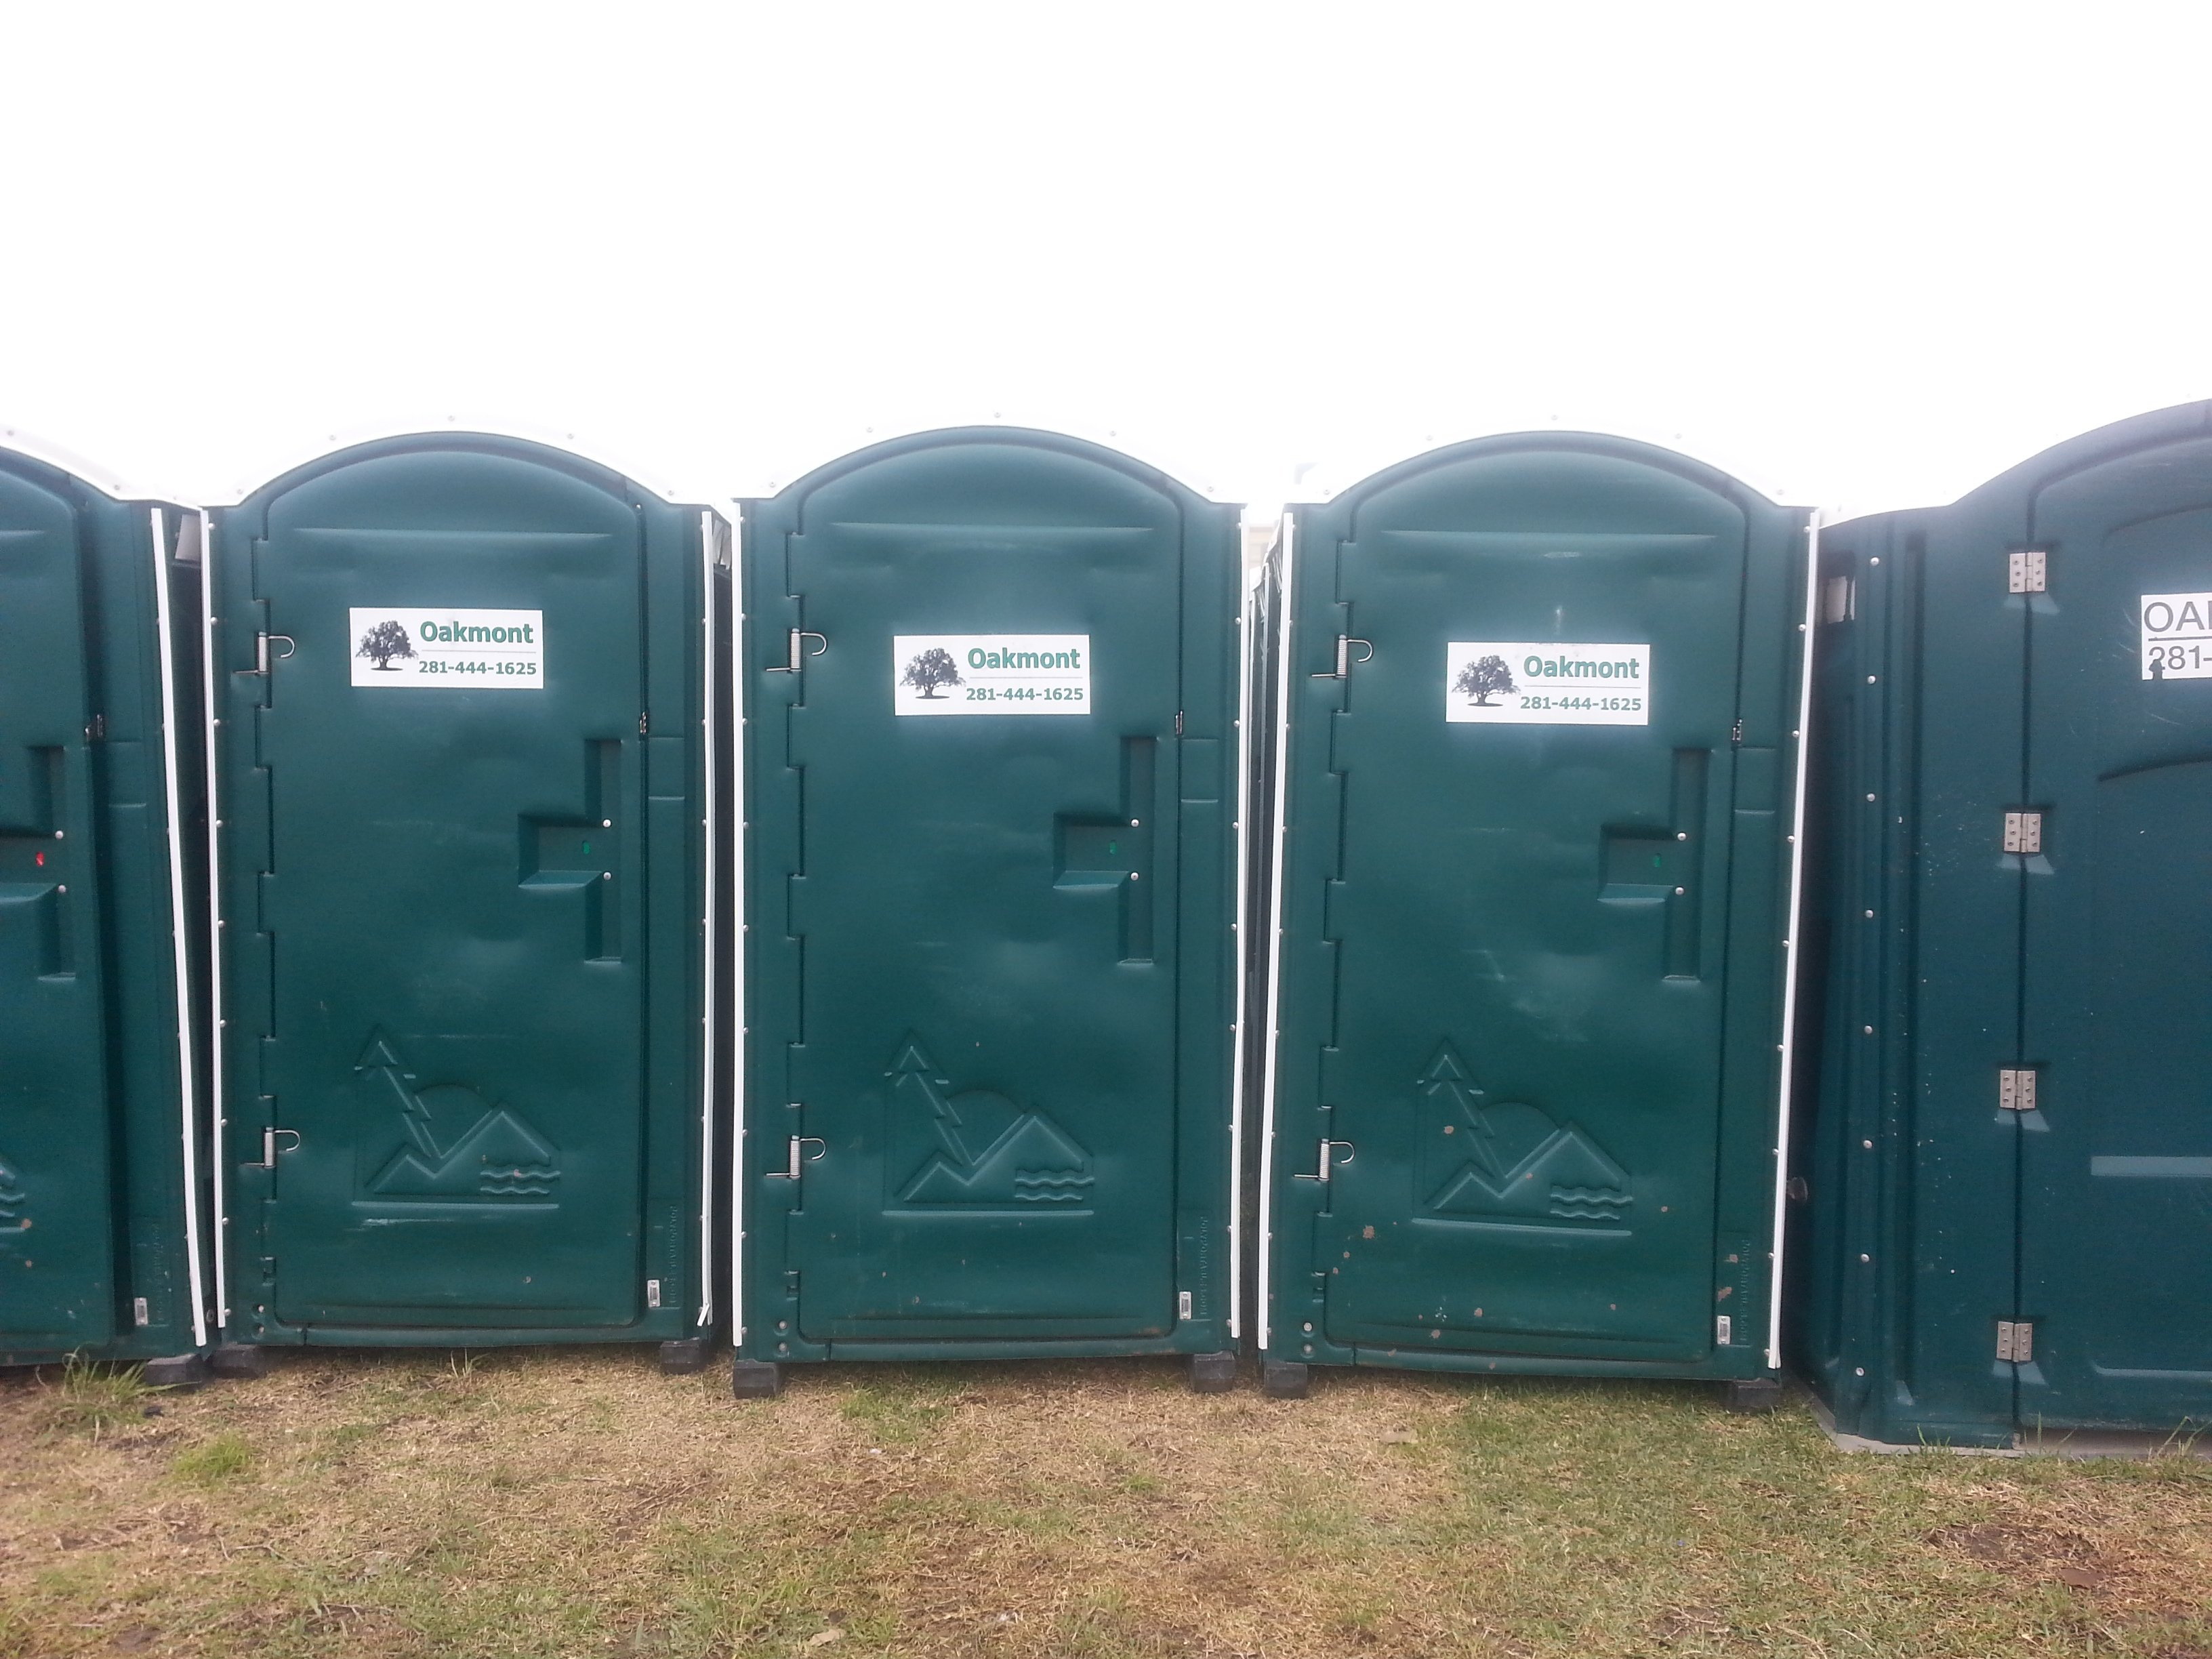 porta orig portable forestville interior toilet ca trailer handicapped bathroom a sebastopol rental rent in sebastopolforestville potty restroom